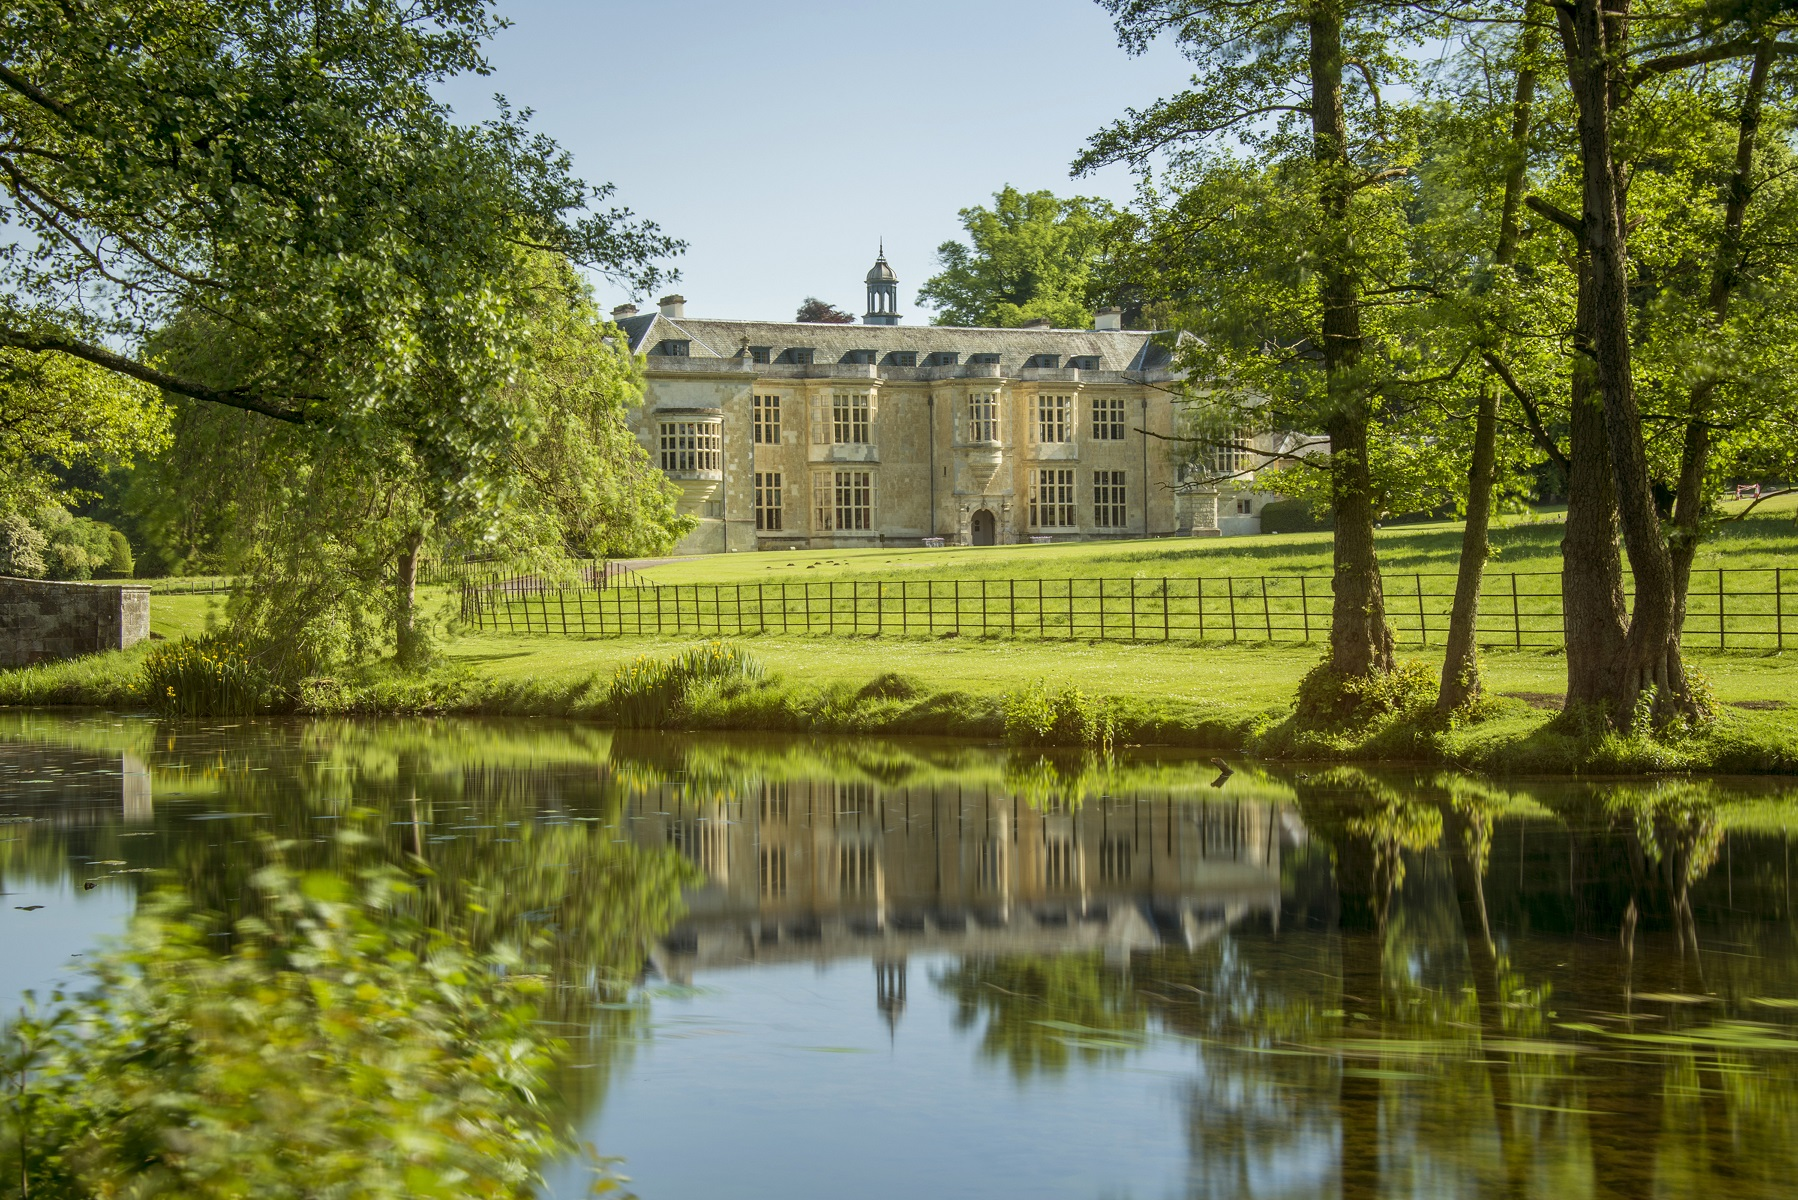 Hartwell House, the country house hotel and spa in the heart of Buckinghamshire near Aylesbury, set in over 90 acres of gardens and parkland.